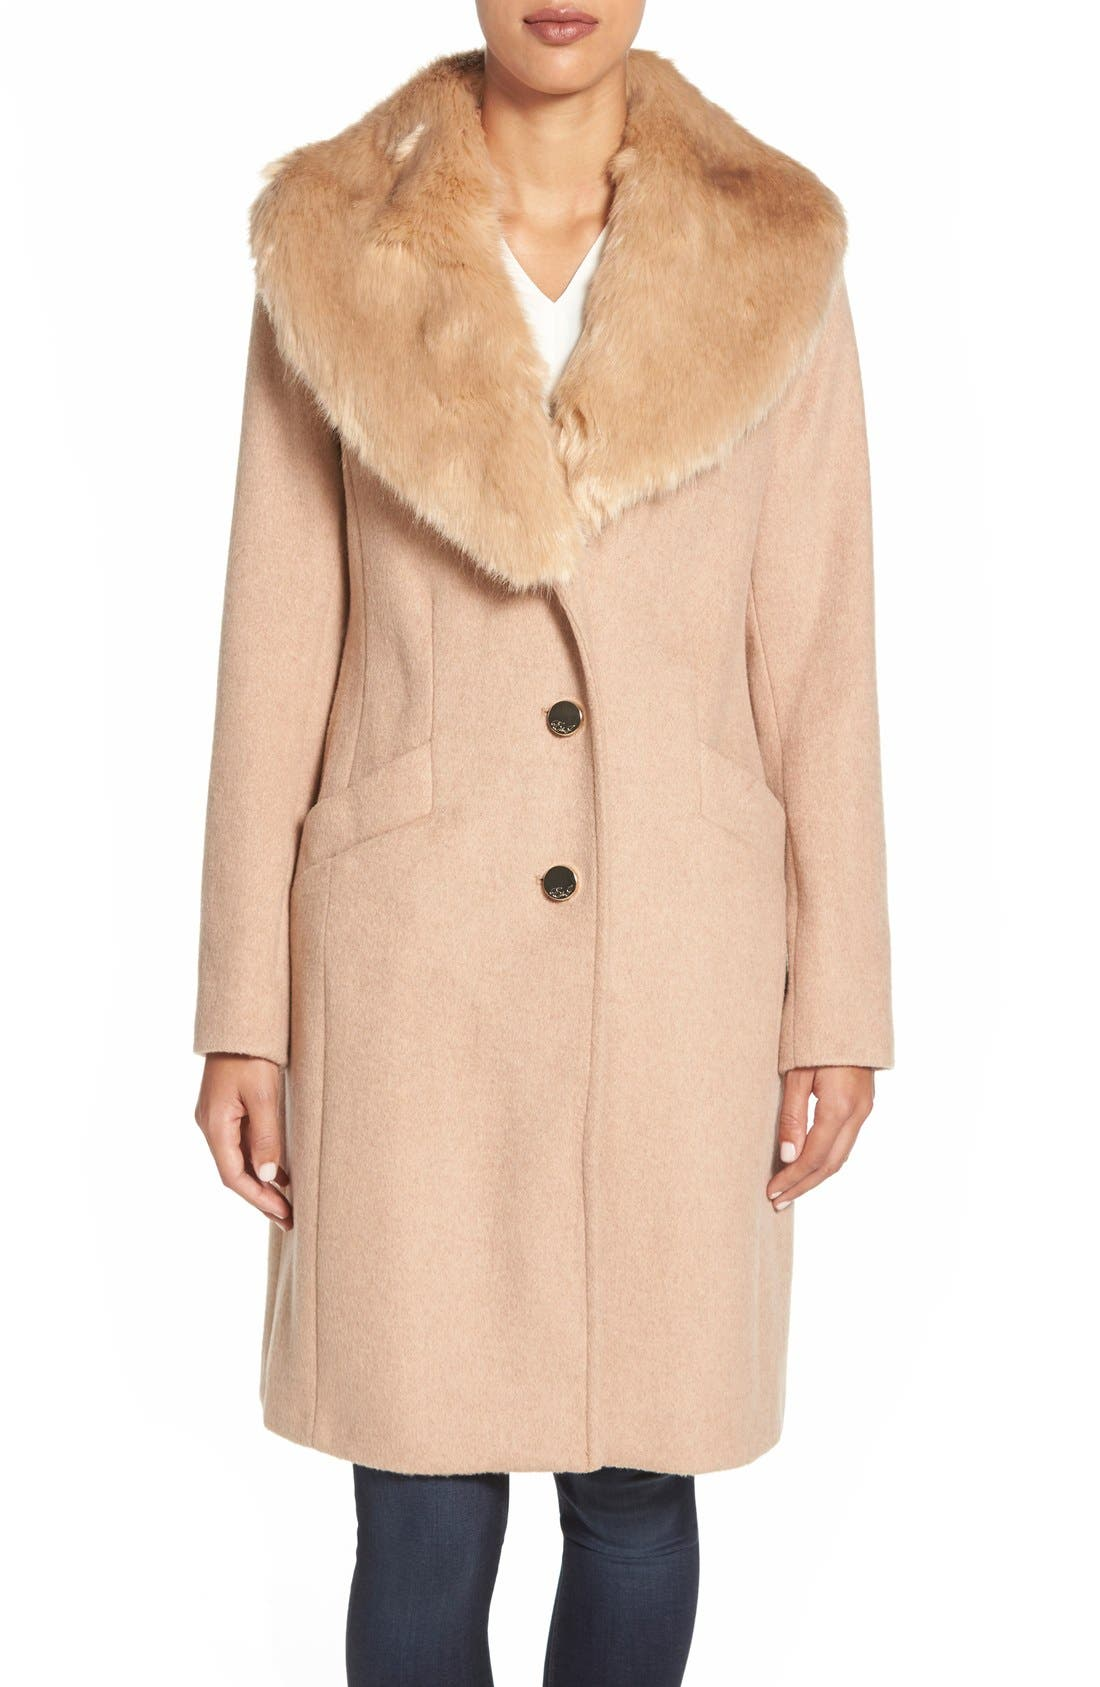 Alternate Image 1 Selected - Eliza J Faux Fur Collar Long Wool Blend Coat